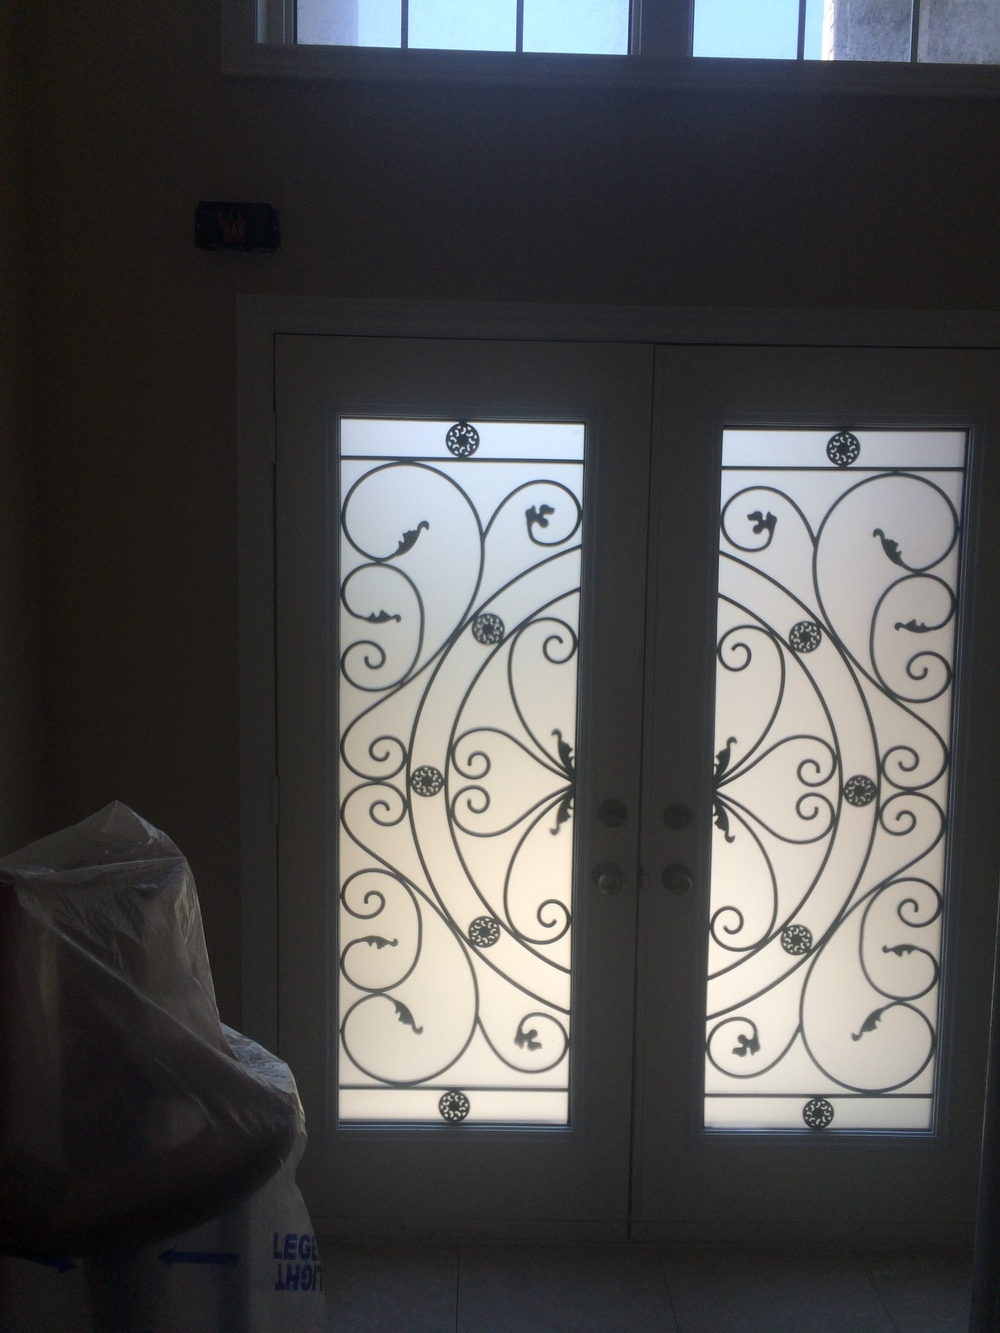 Campbellsford-Wrought-Iron-Glass-Door-Inserts-vaughan-Ontario